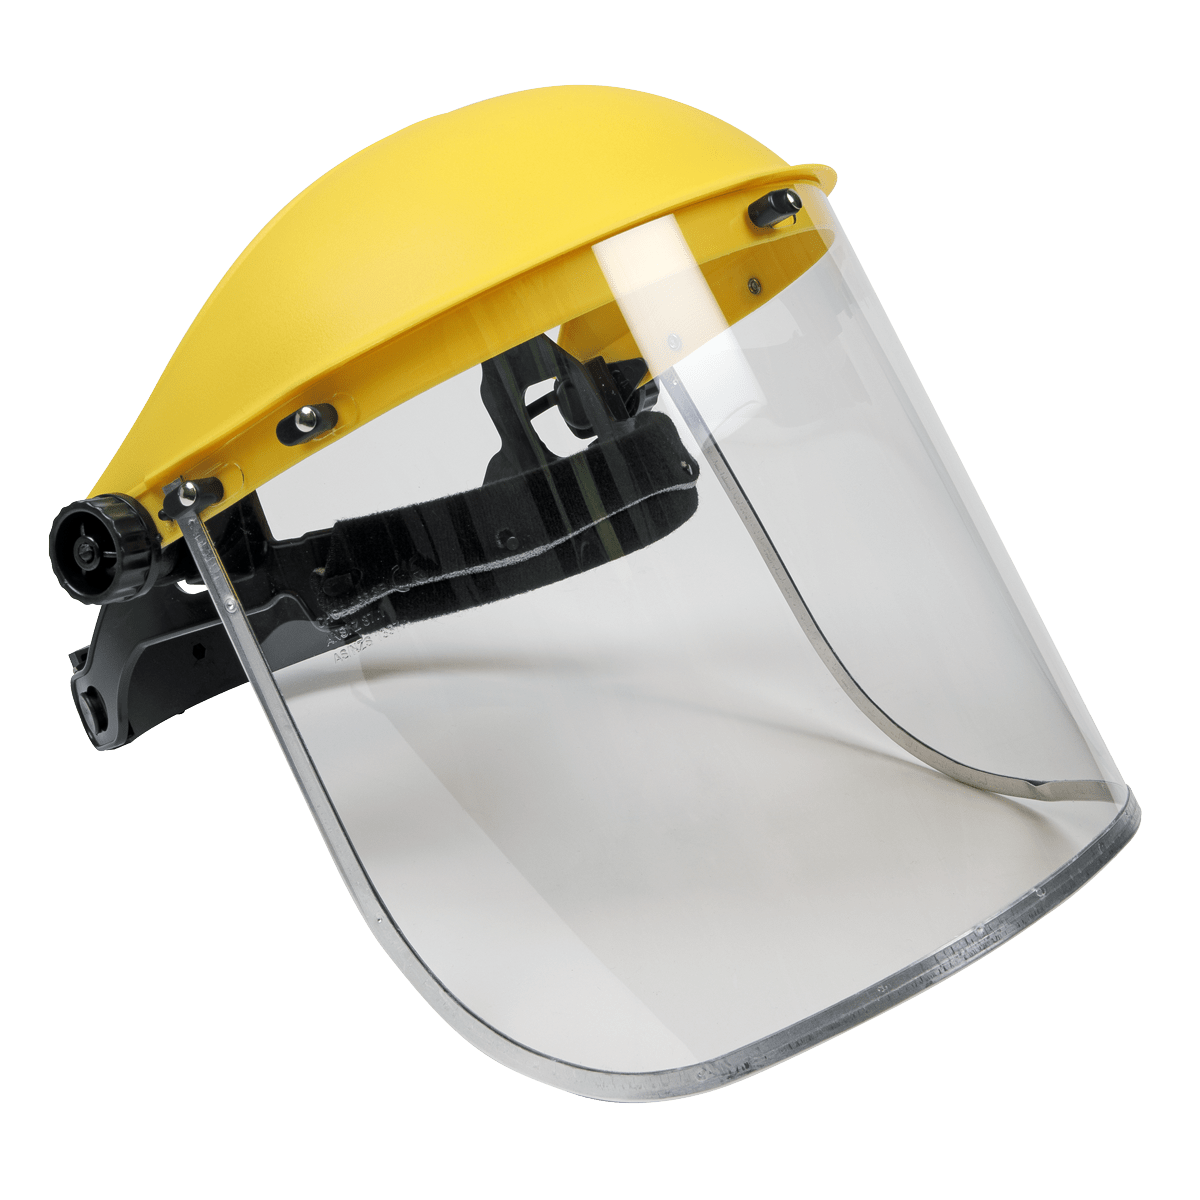 Sealey Brow Guard & Full Face Shield SSP11E   BS EN 166, Optical Class 1, Impact Grade B - Ratchet adjustable headband with brushed nylon comfort band.   Toolforce.ie